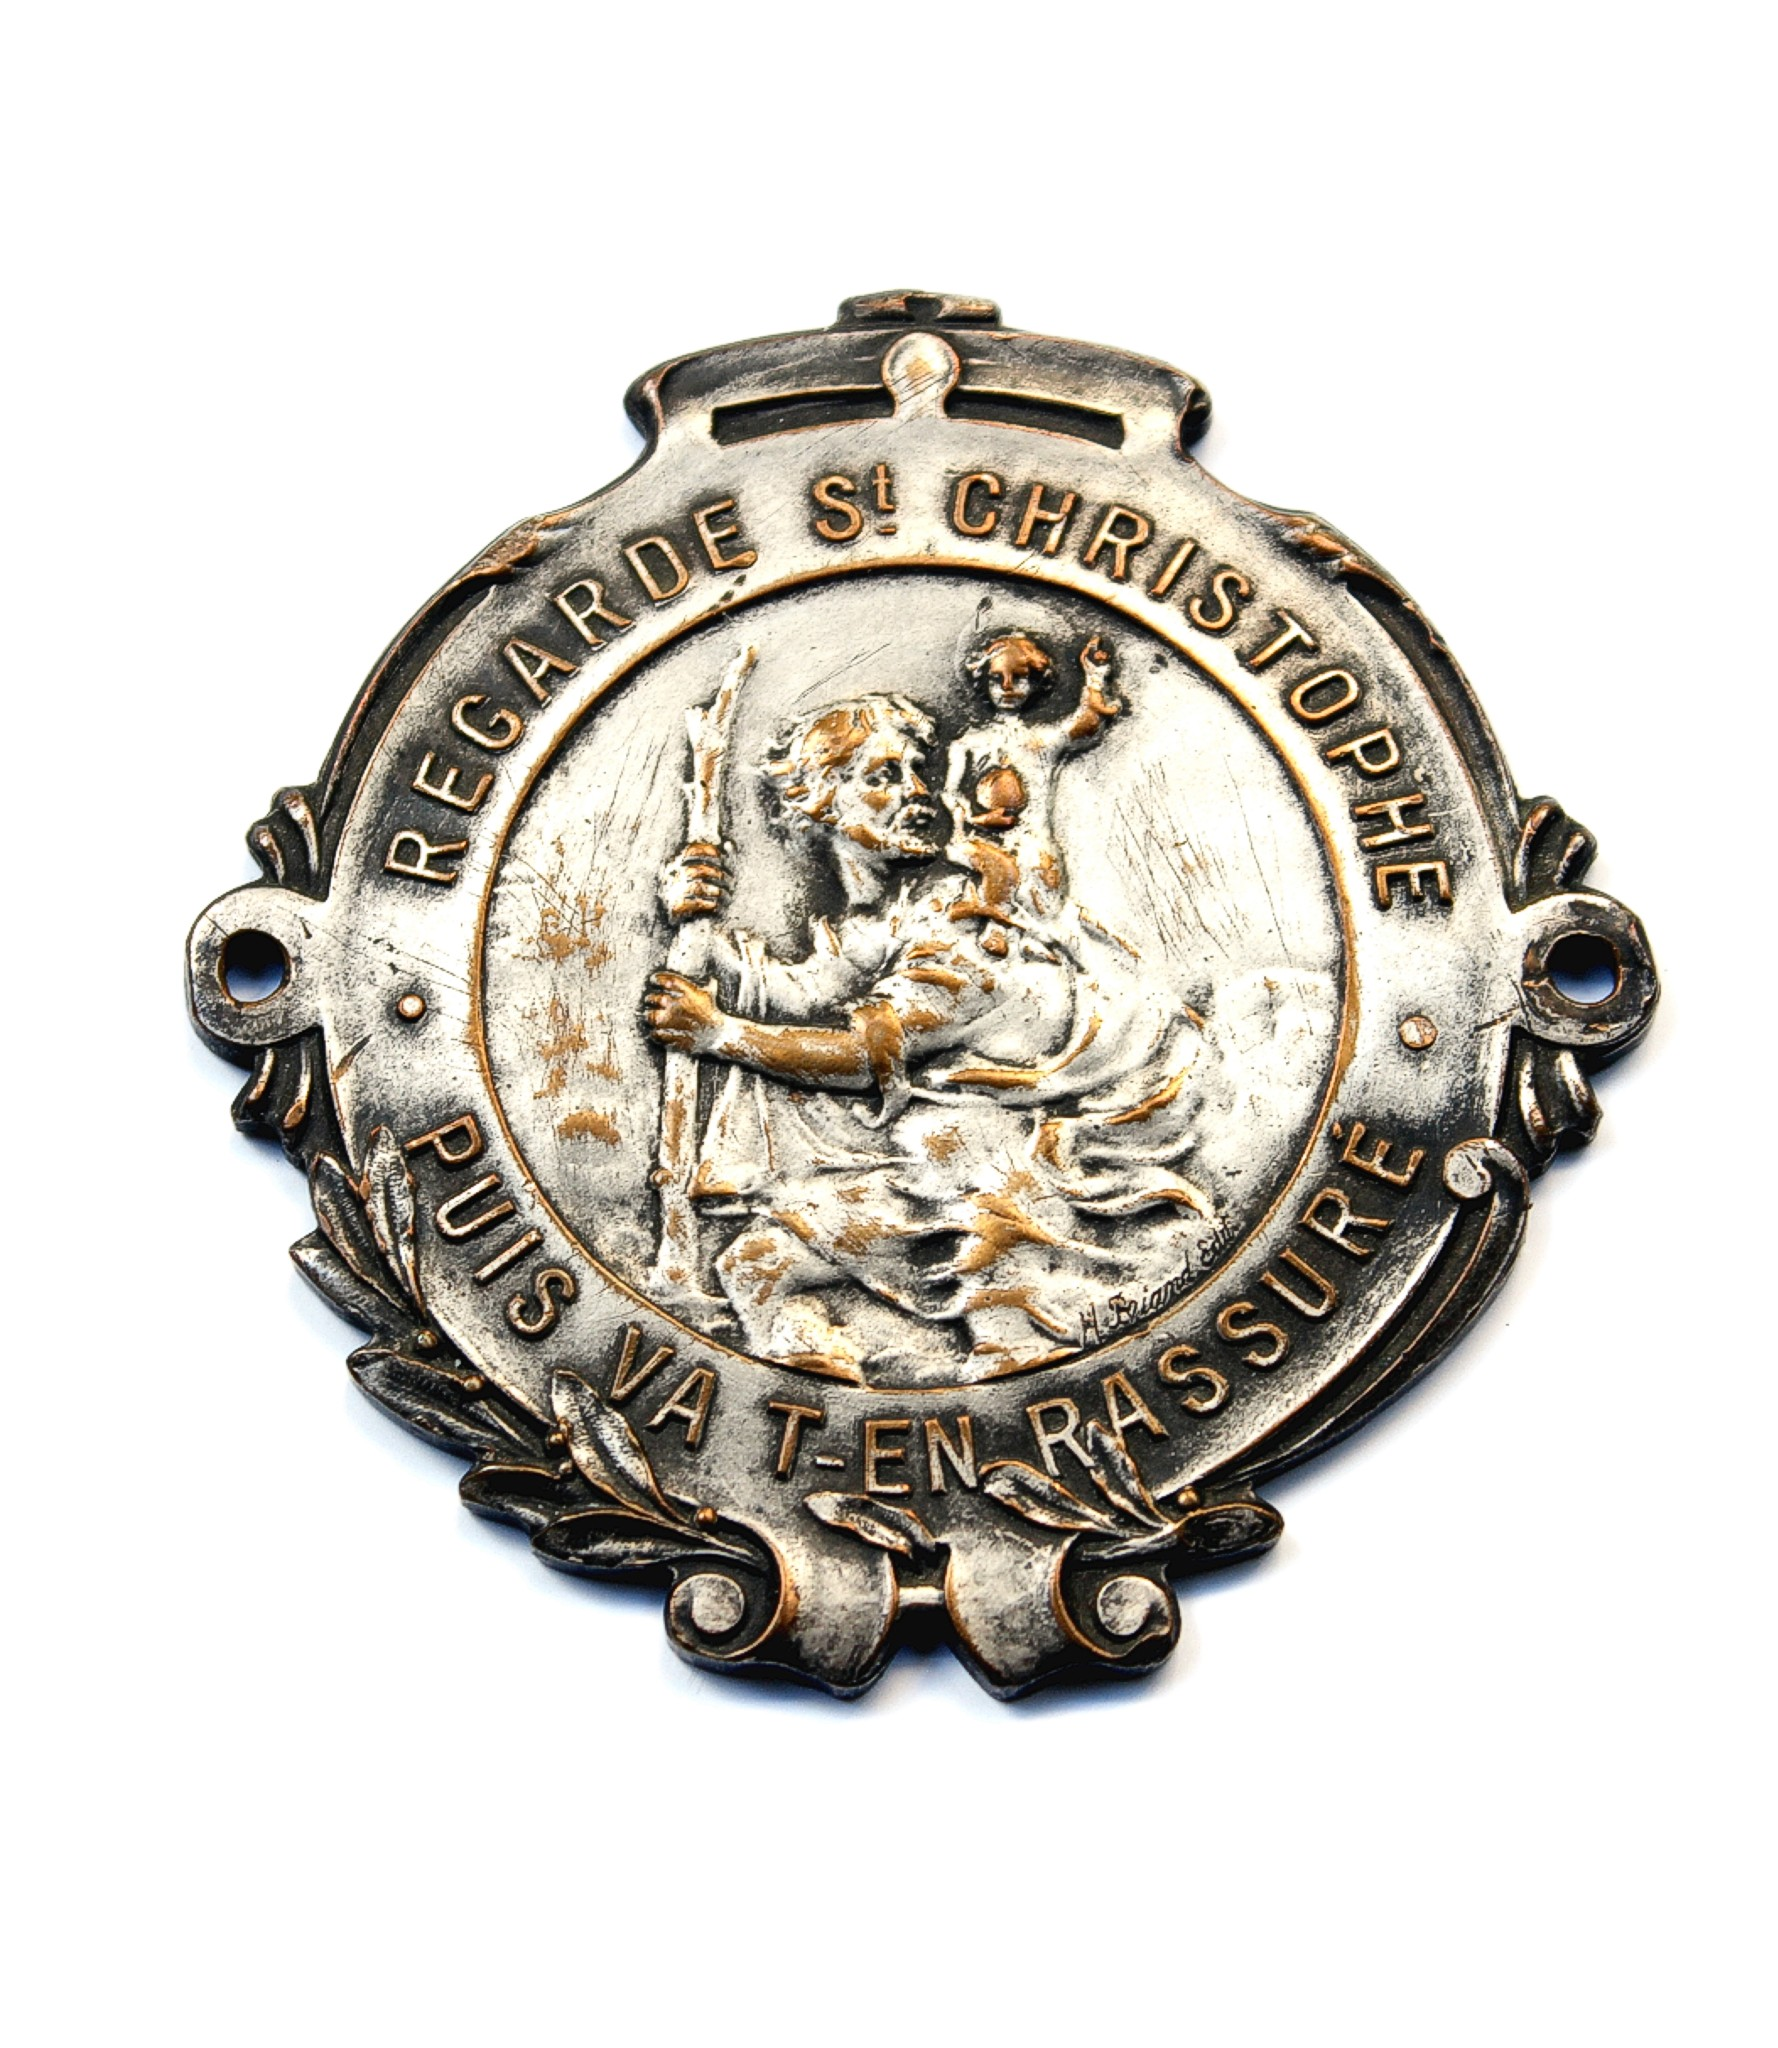 Saint Christopher dashboard badge by Briand